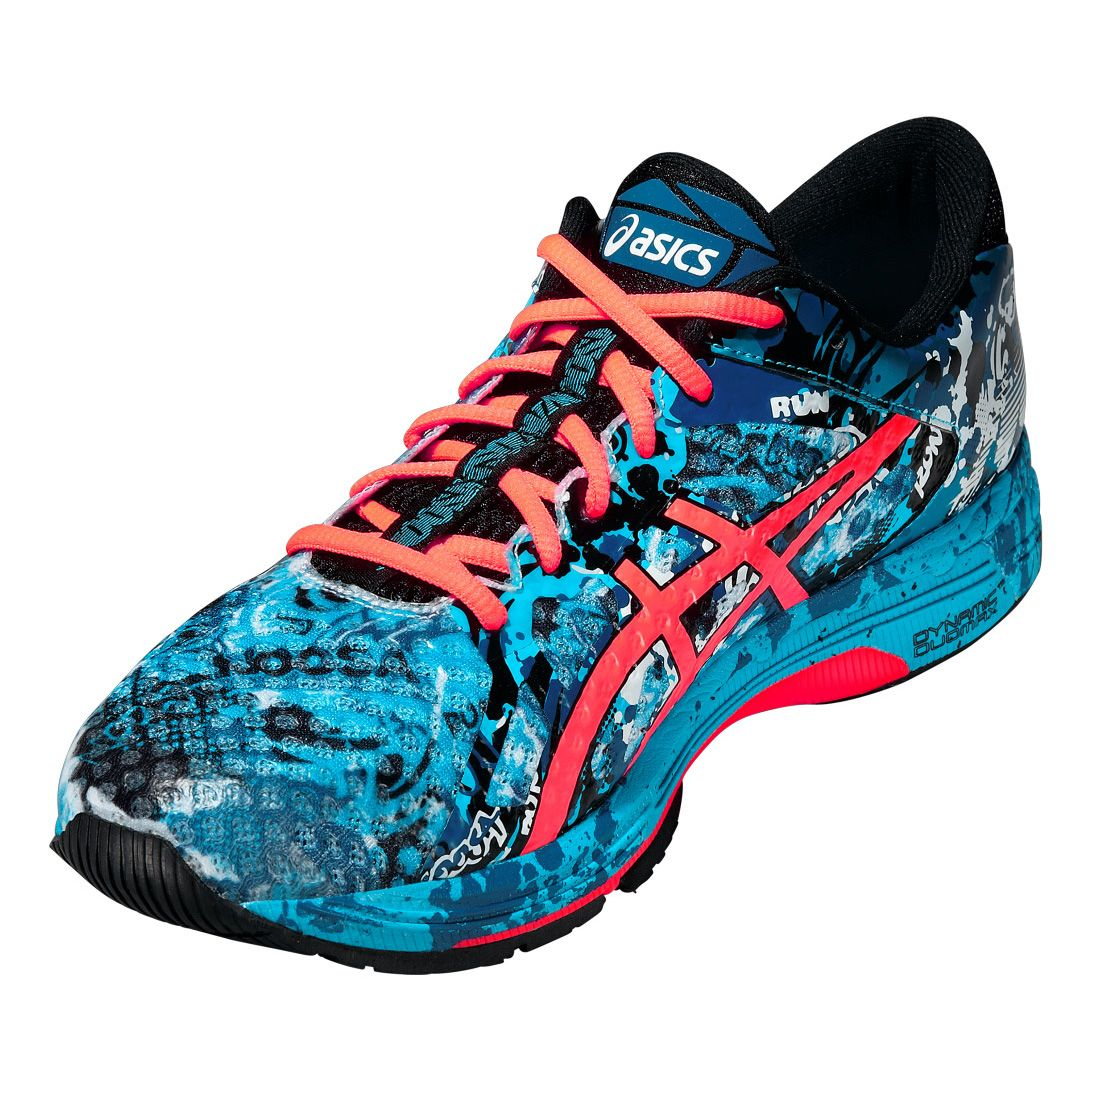 Asics Gel-Noosa Tri 11 Mens Running Shoes - Sweatband.com